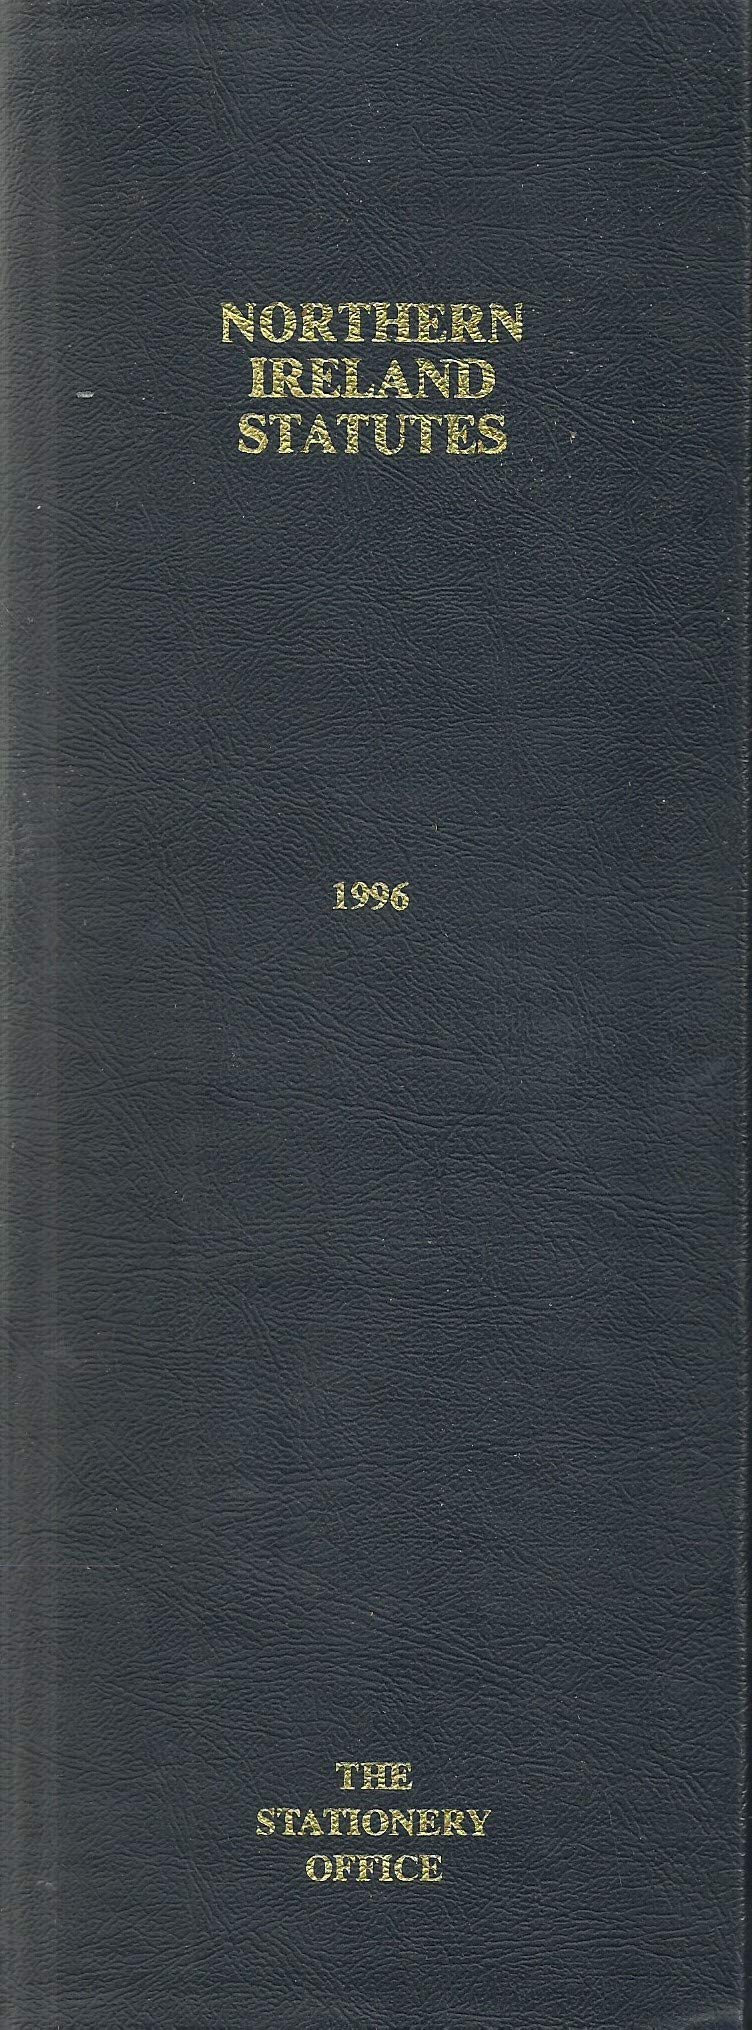 Northern Ireland Statutes 1996: [Binder]